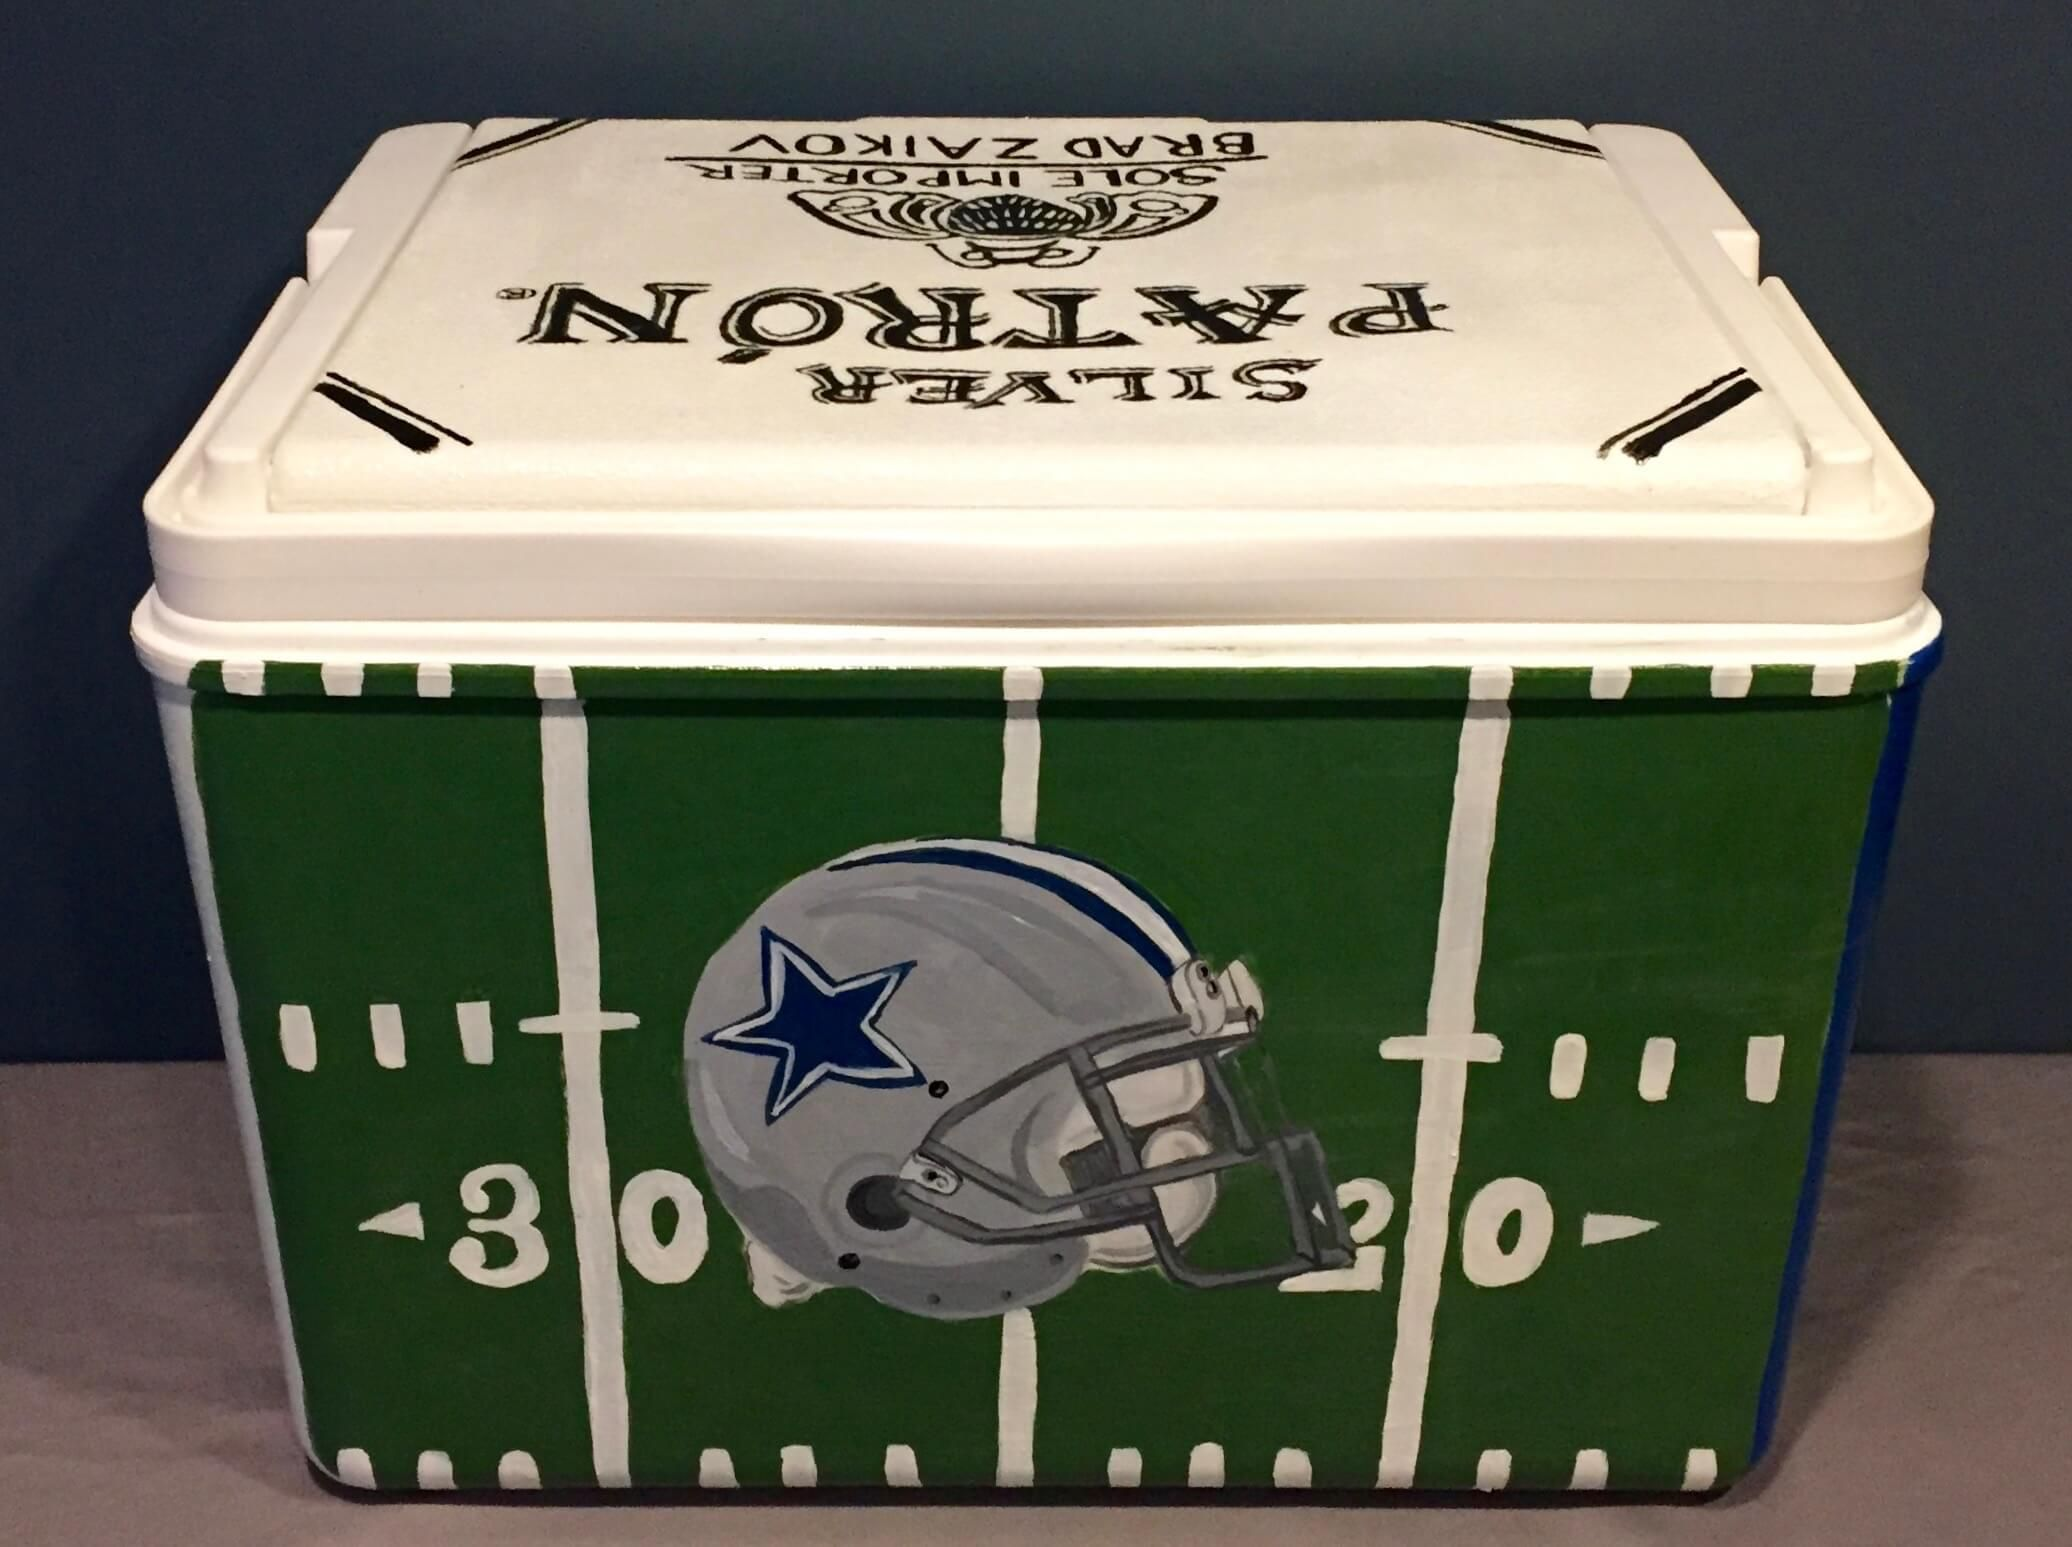 Check out this custom painted frat cooler dallas cowboys